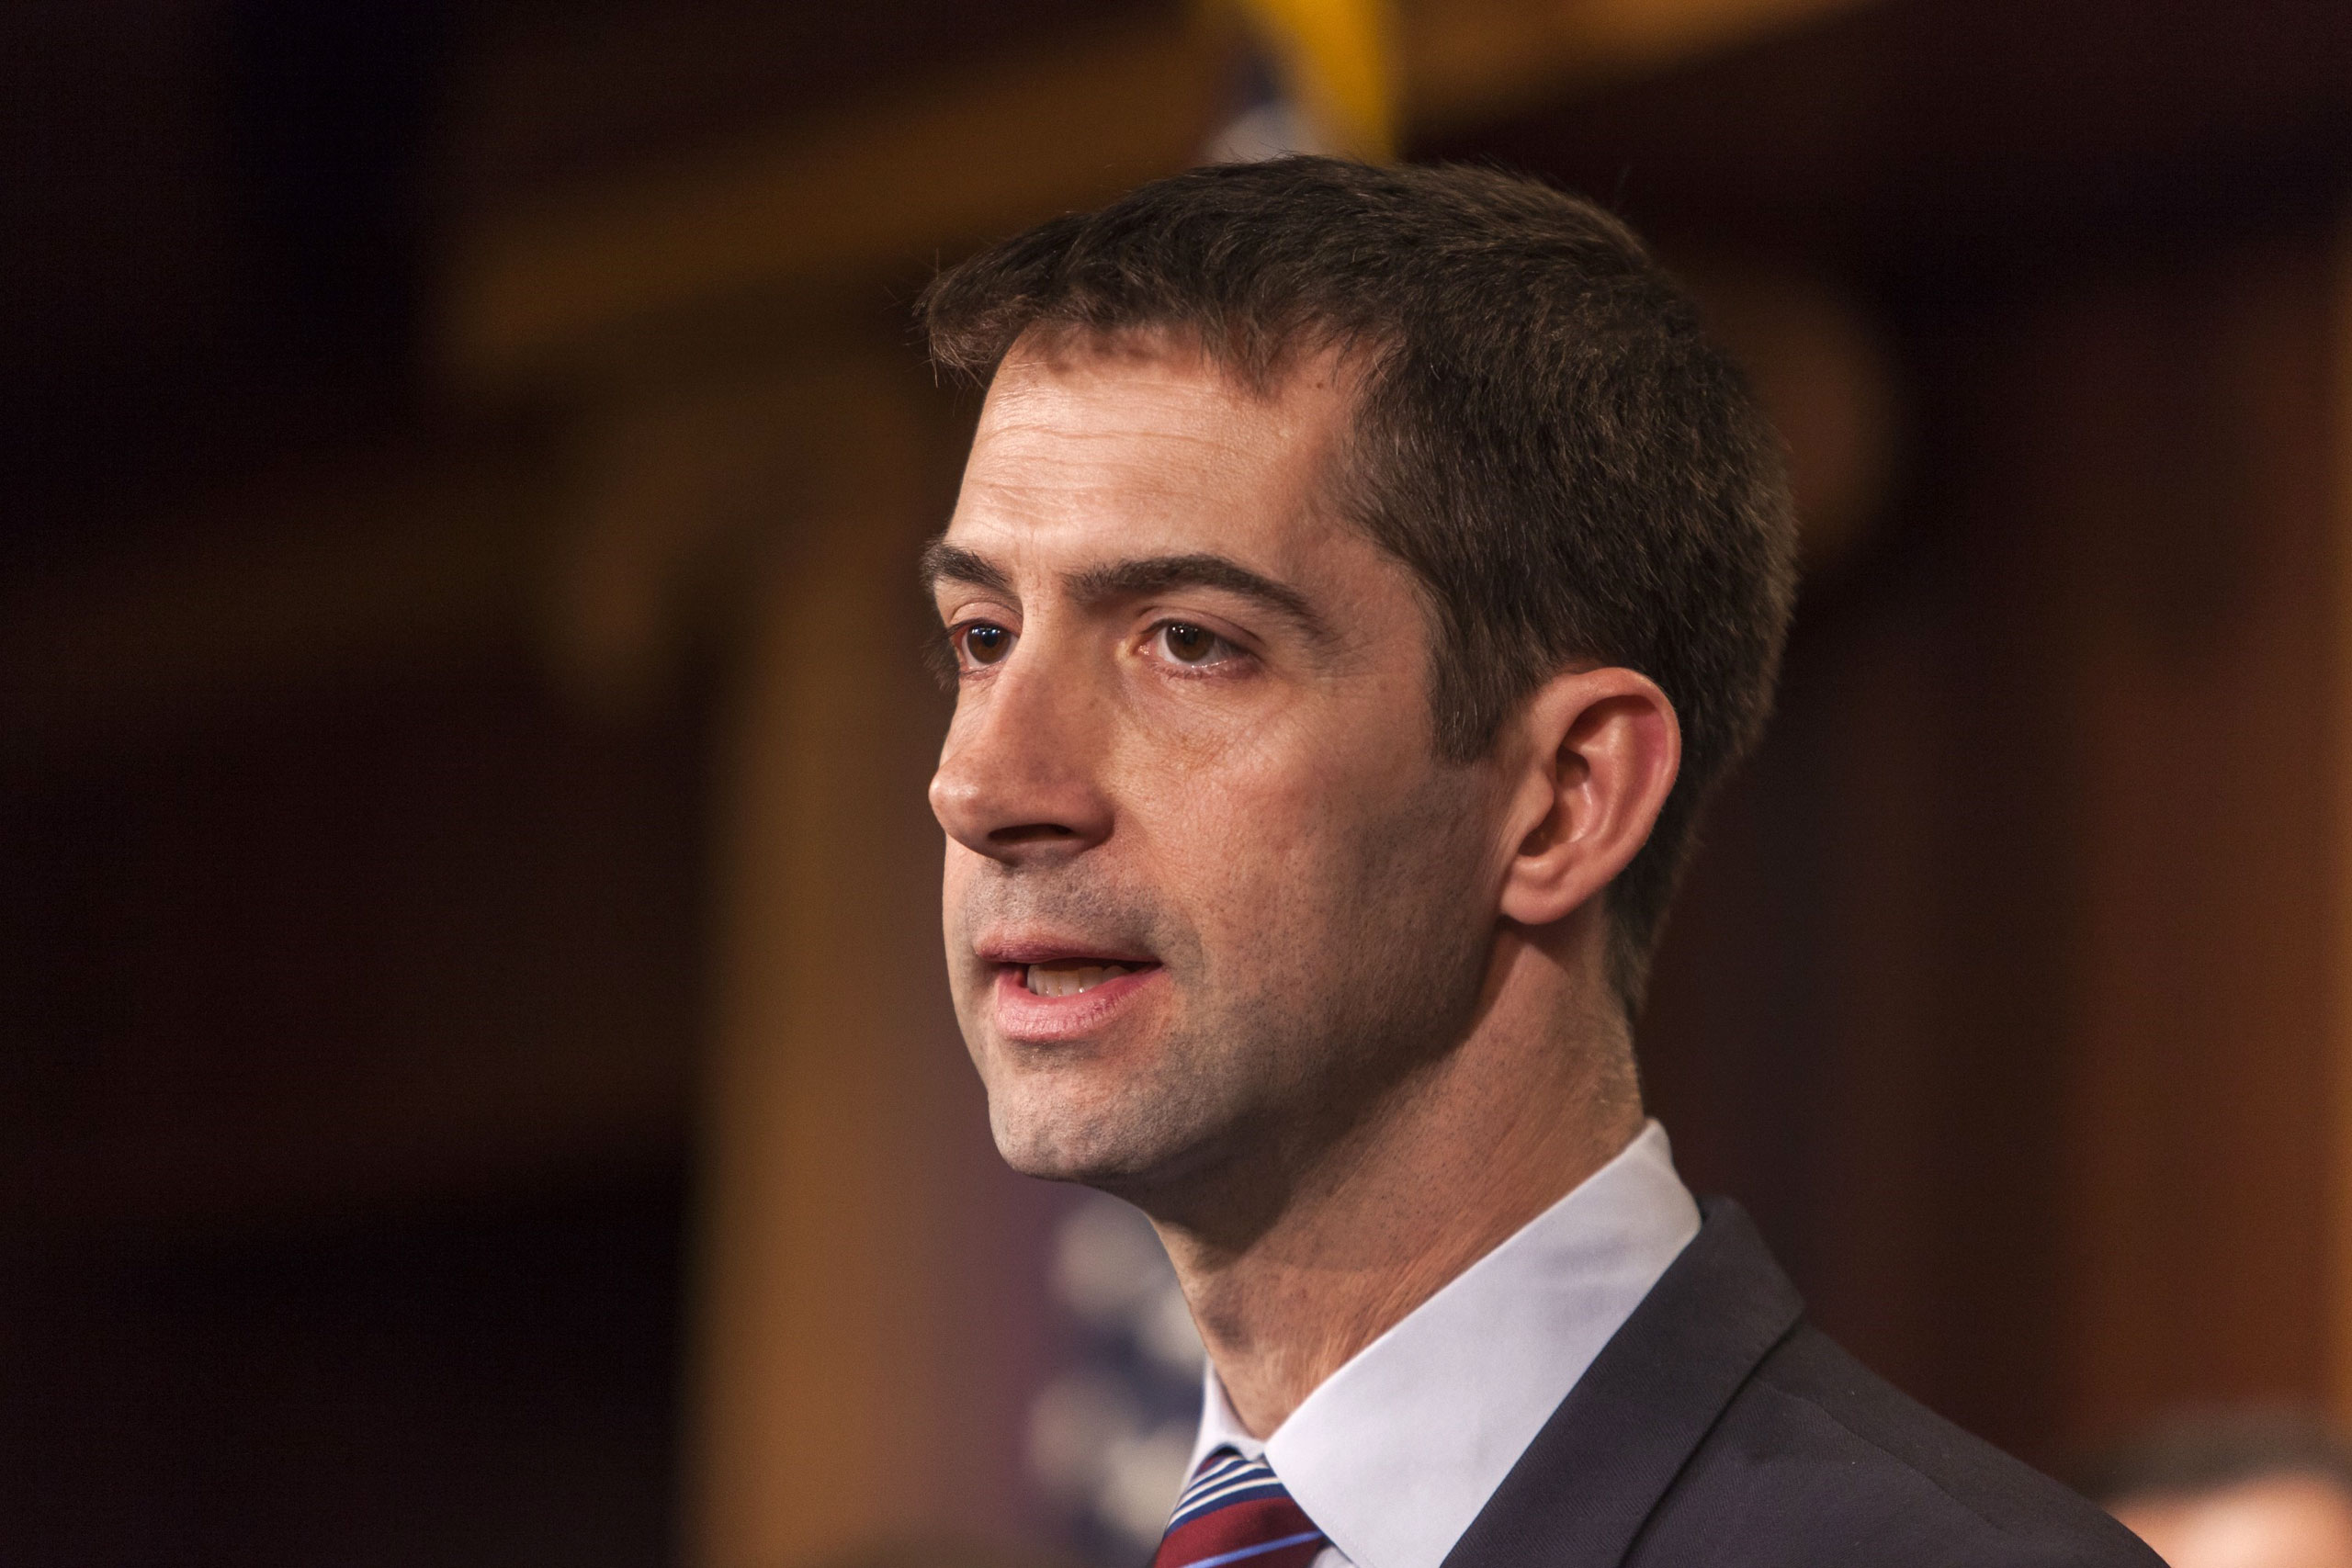 Senator Tom Cotton speaks during a news conference with members of the Senate Armed Services Committee about arming Ukraine in the fight against Russia in Washington, D.C. on Feb. 5, 2015.